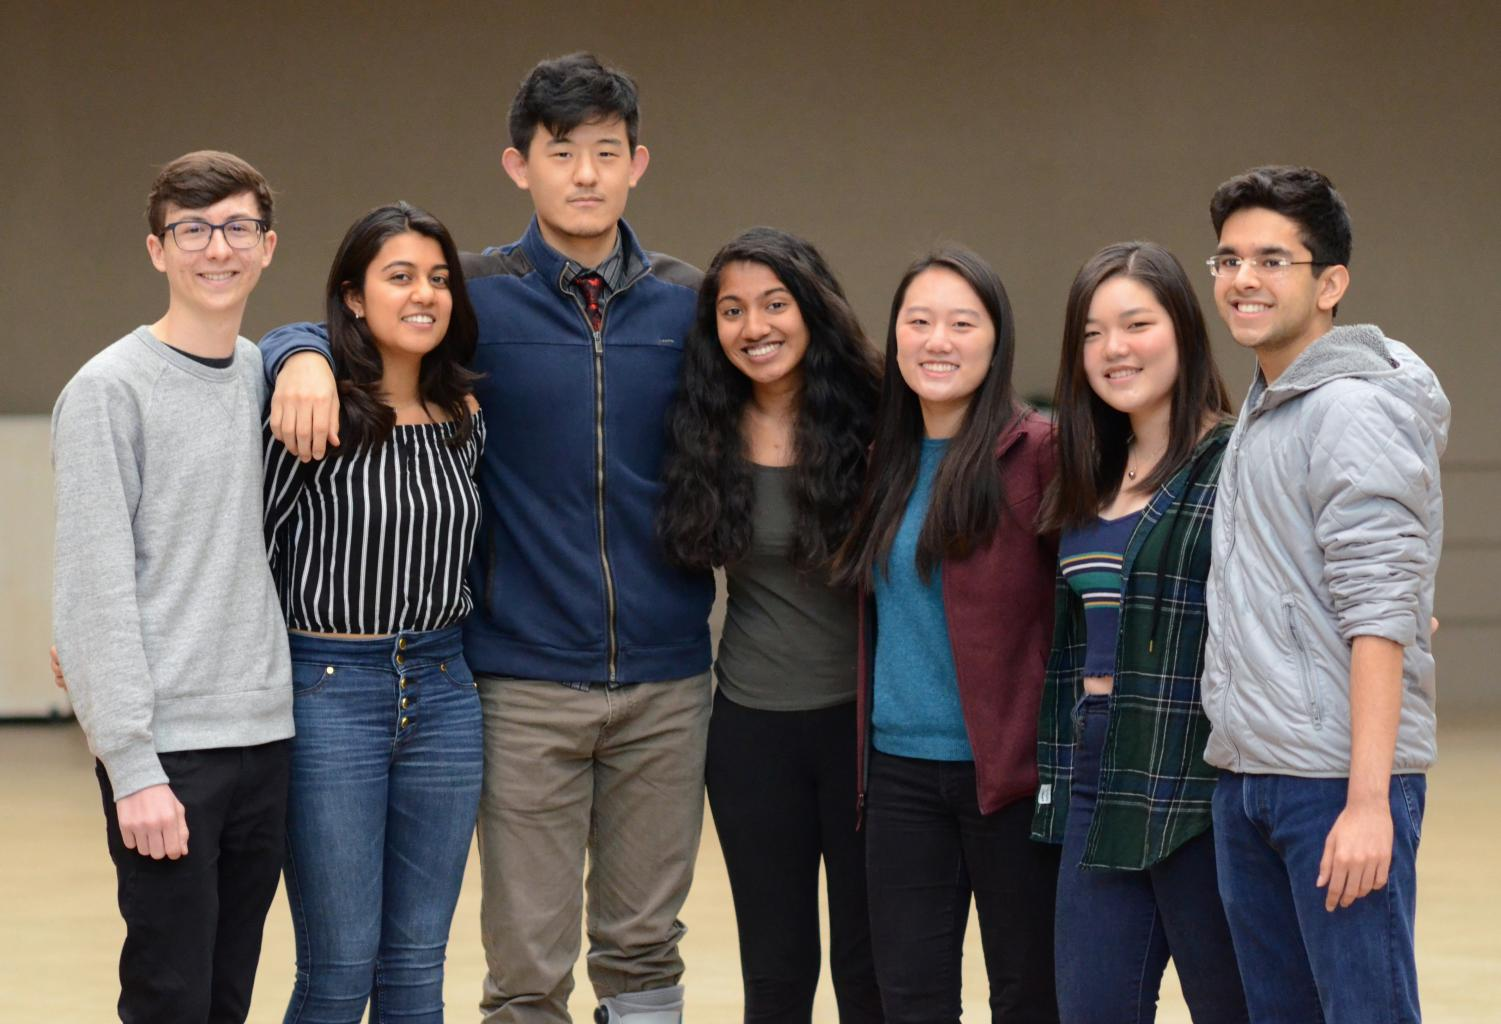 Harker's 2019 Regeneron Science Talent Search scholars pose for a picture. From left to right: Cameron Jones, Natasha Maniar, Richard Wang, Ruhi Sayana, Katherine Tian, Cindy Wang and Ayush Alag, all seniors. Natasha, Ruhi, and Ayush were finalists as well.